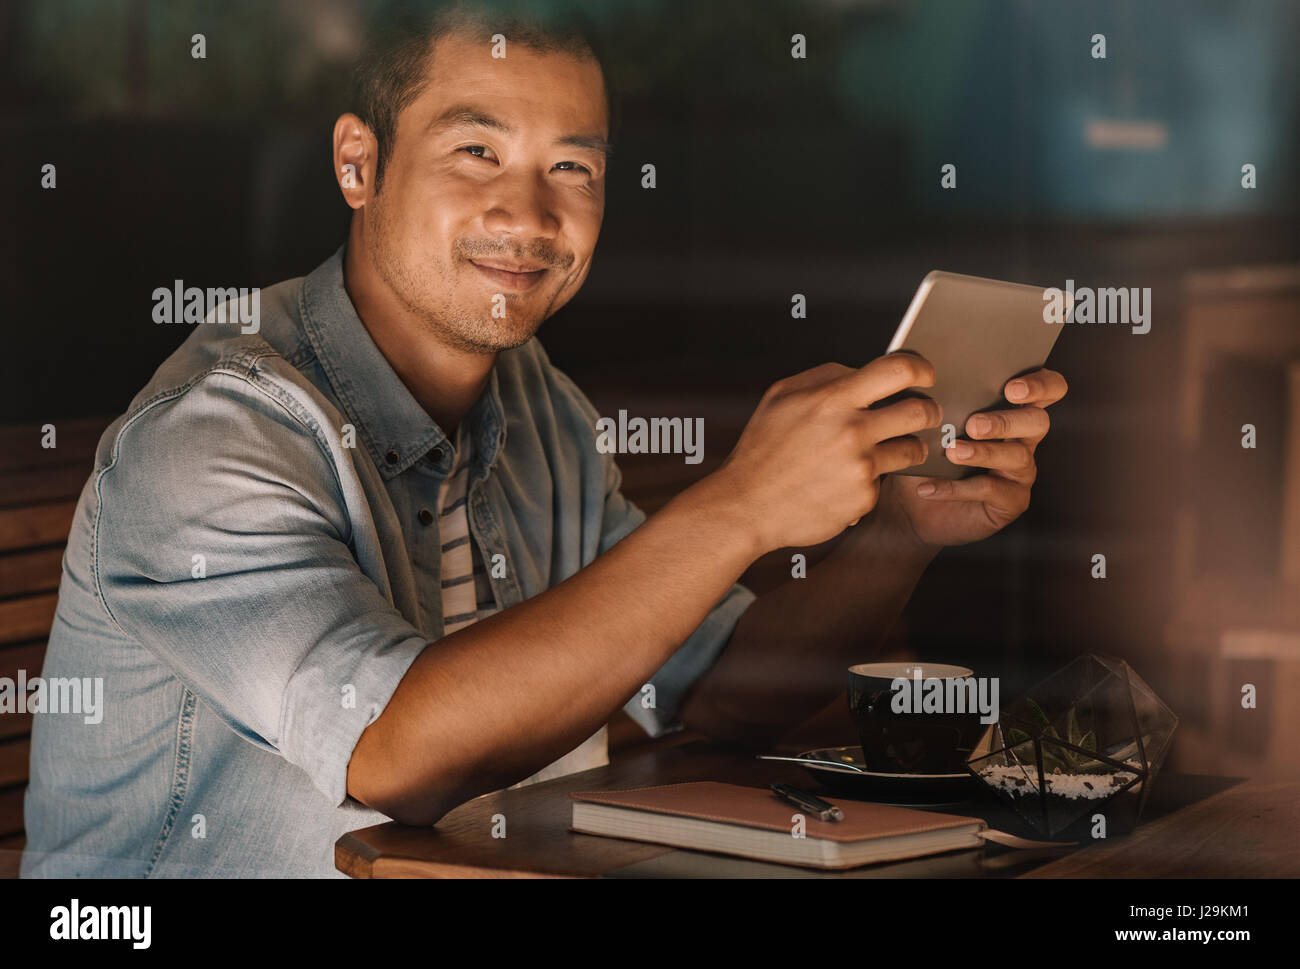 Content Asian man browsing online while sitting in a cafe - Stock Image